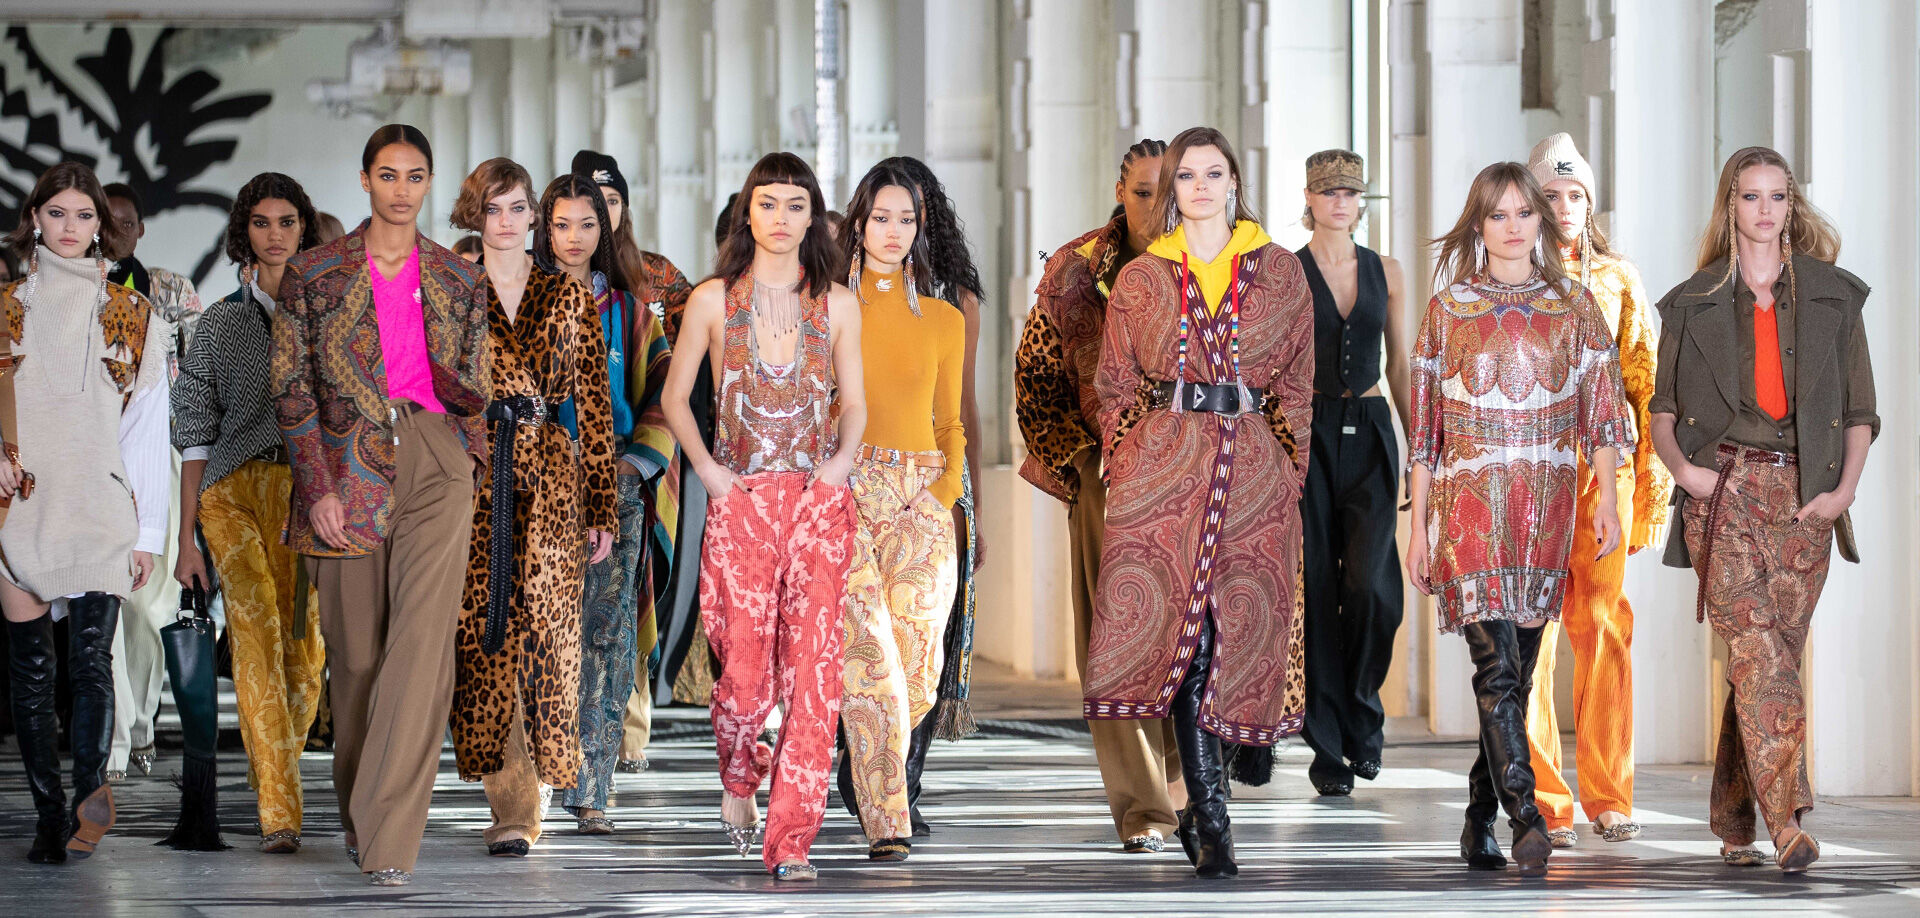 ETRO_WOMEN'S FALL-WINTER 2021 FASHION SHOW